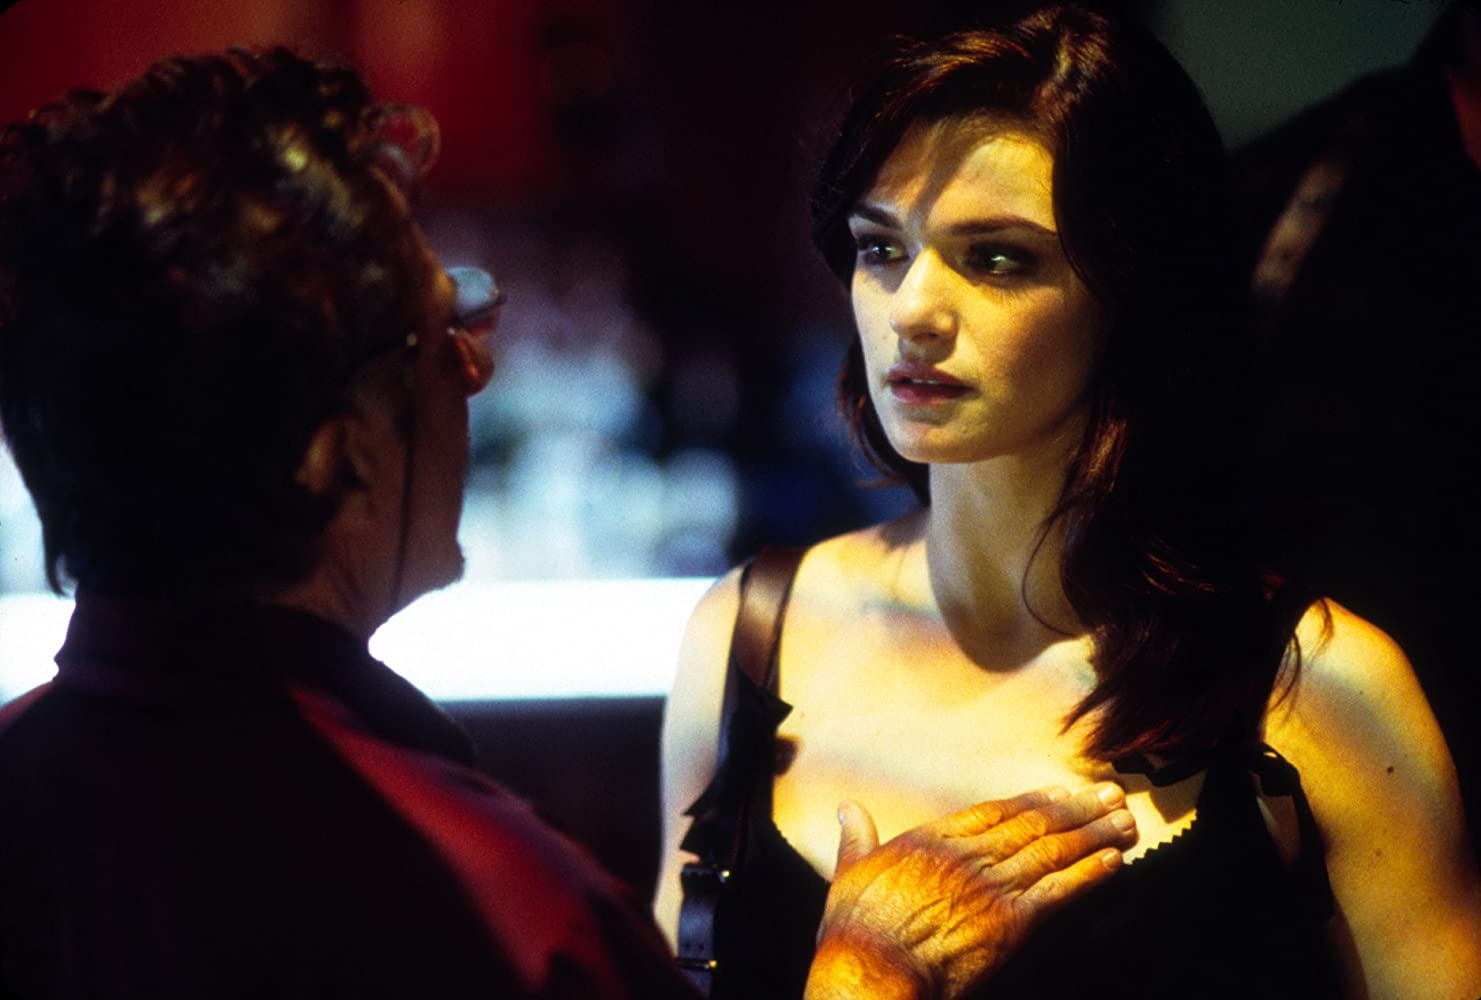 Dustin Hoffman and Rachel Weisz in Confidence (2003)